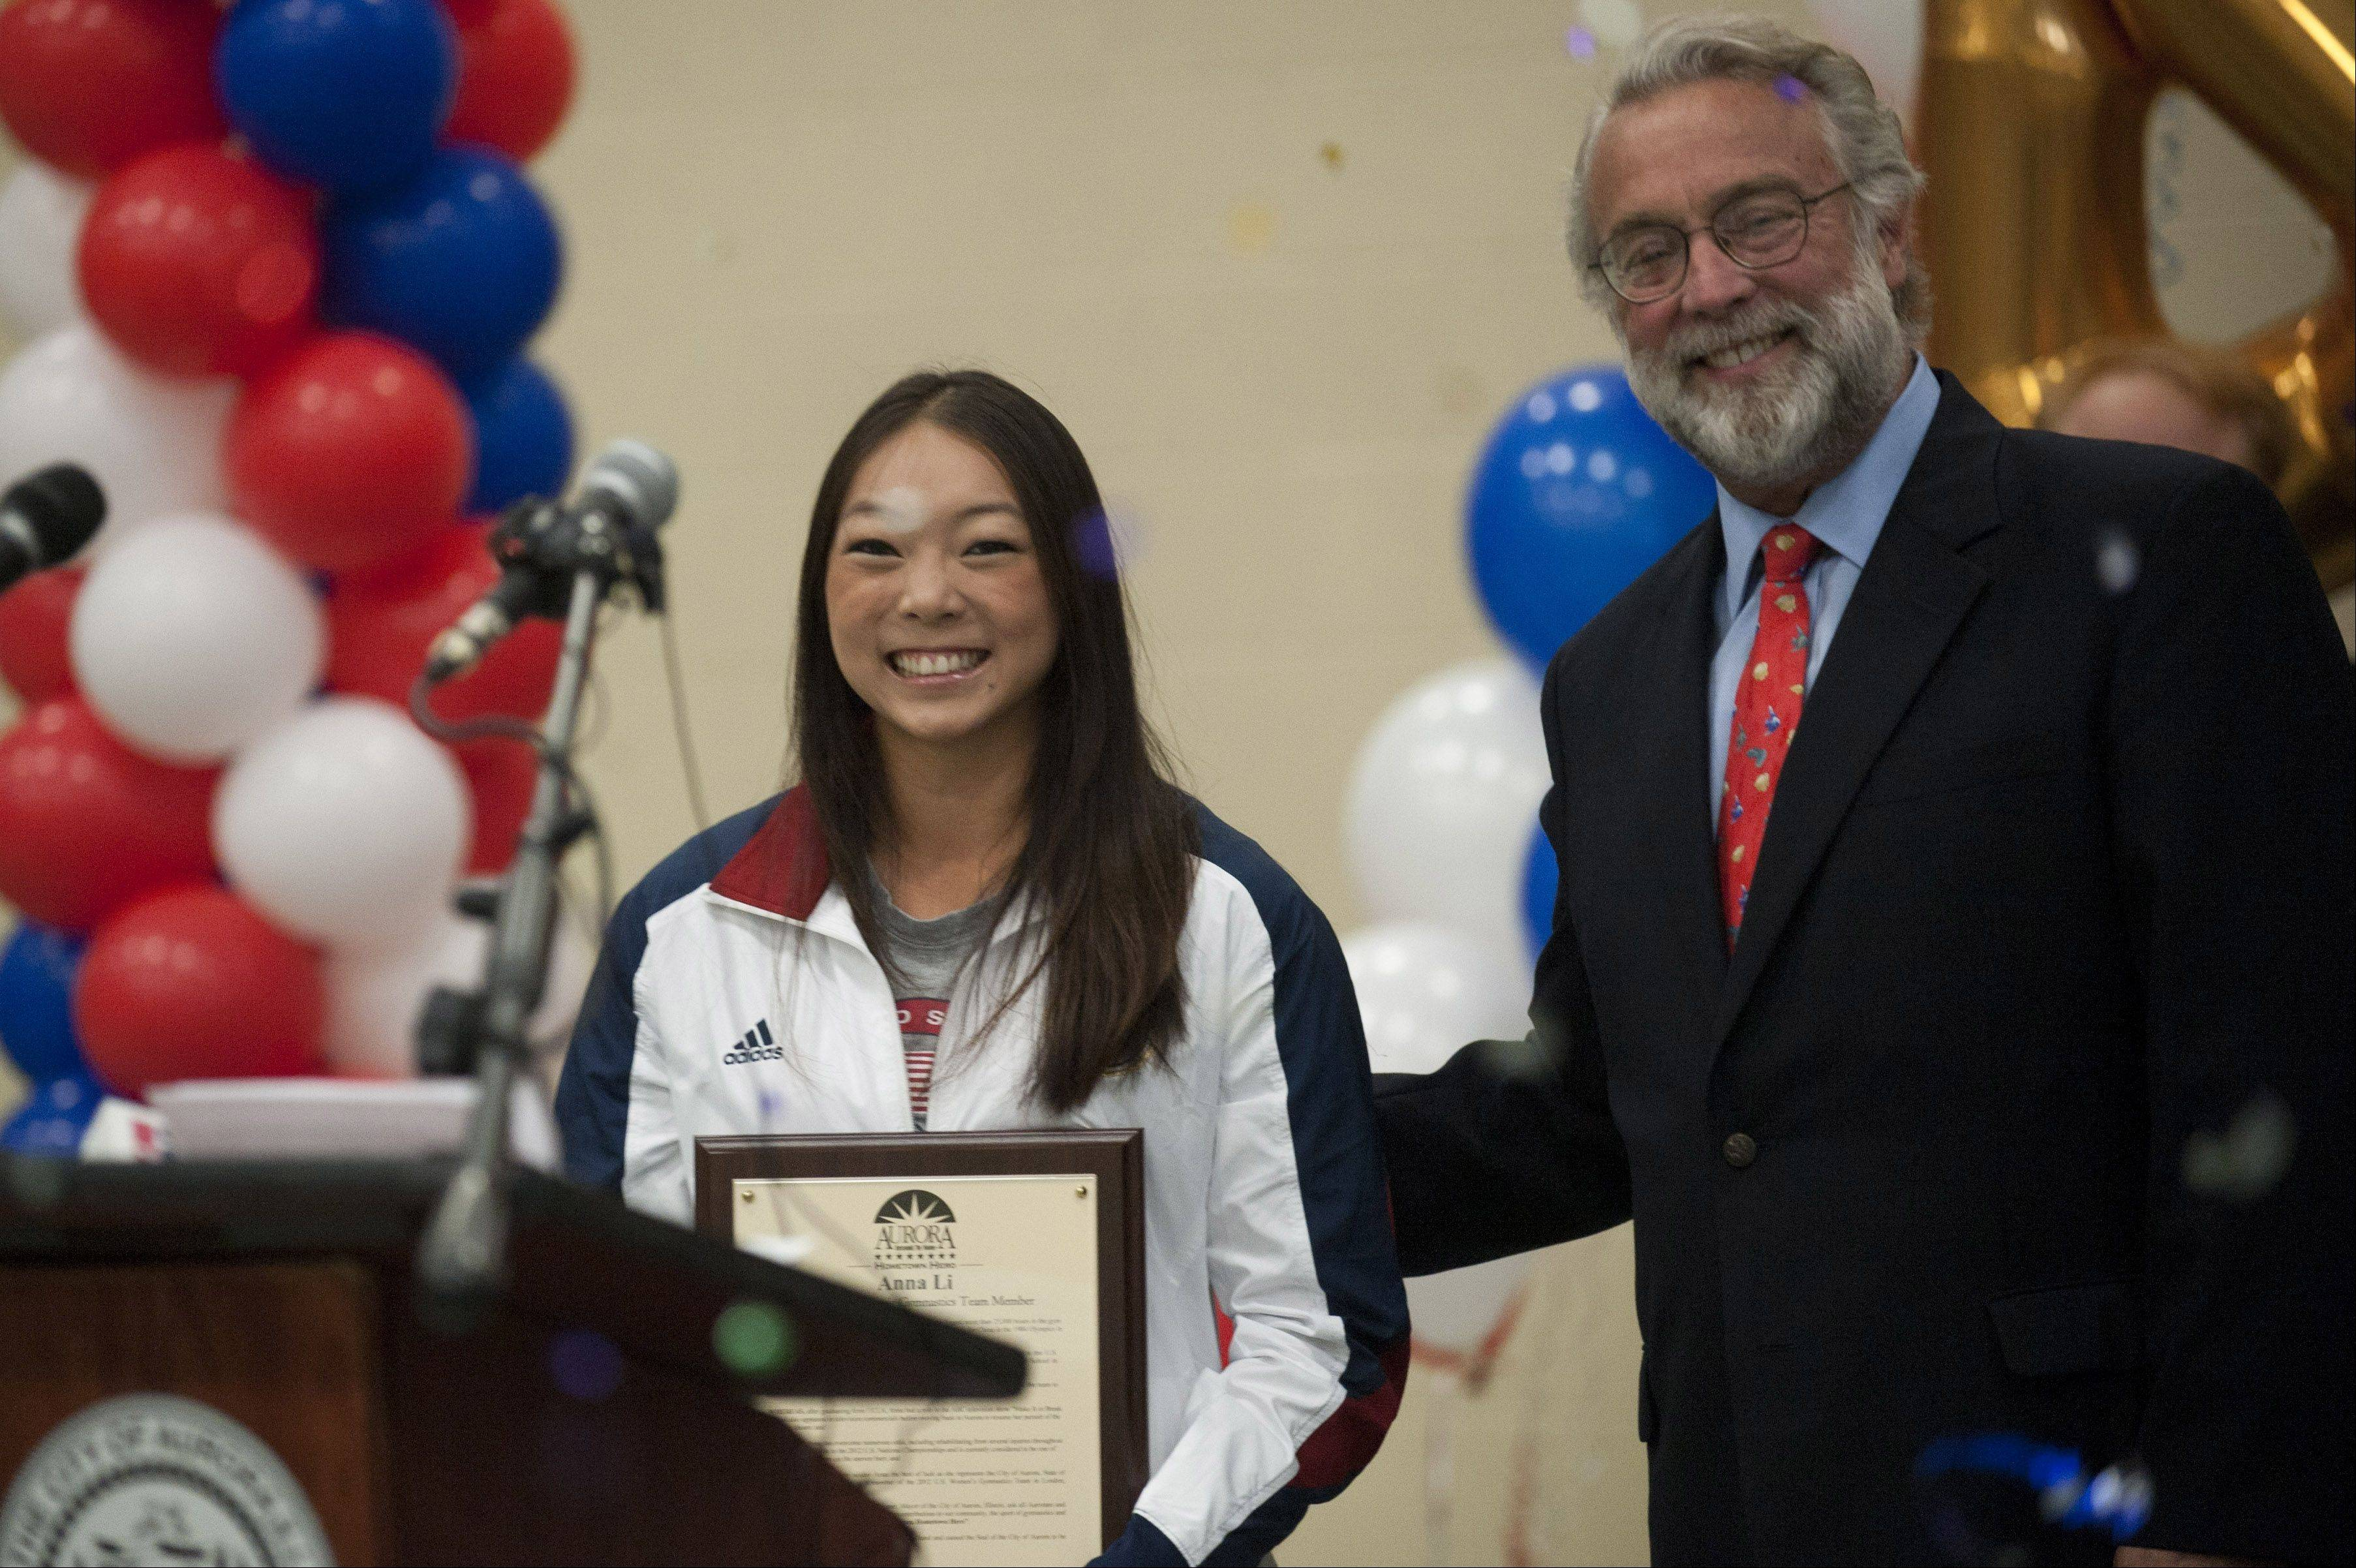 Anna Li, who was chosen last Sunday as an alternate member of the U.S. Women's Gymnastics team, was presented an award Monday by Mayor Tom Weisner during a send-off celebration in Aurora.